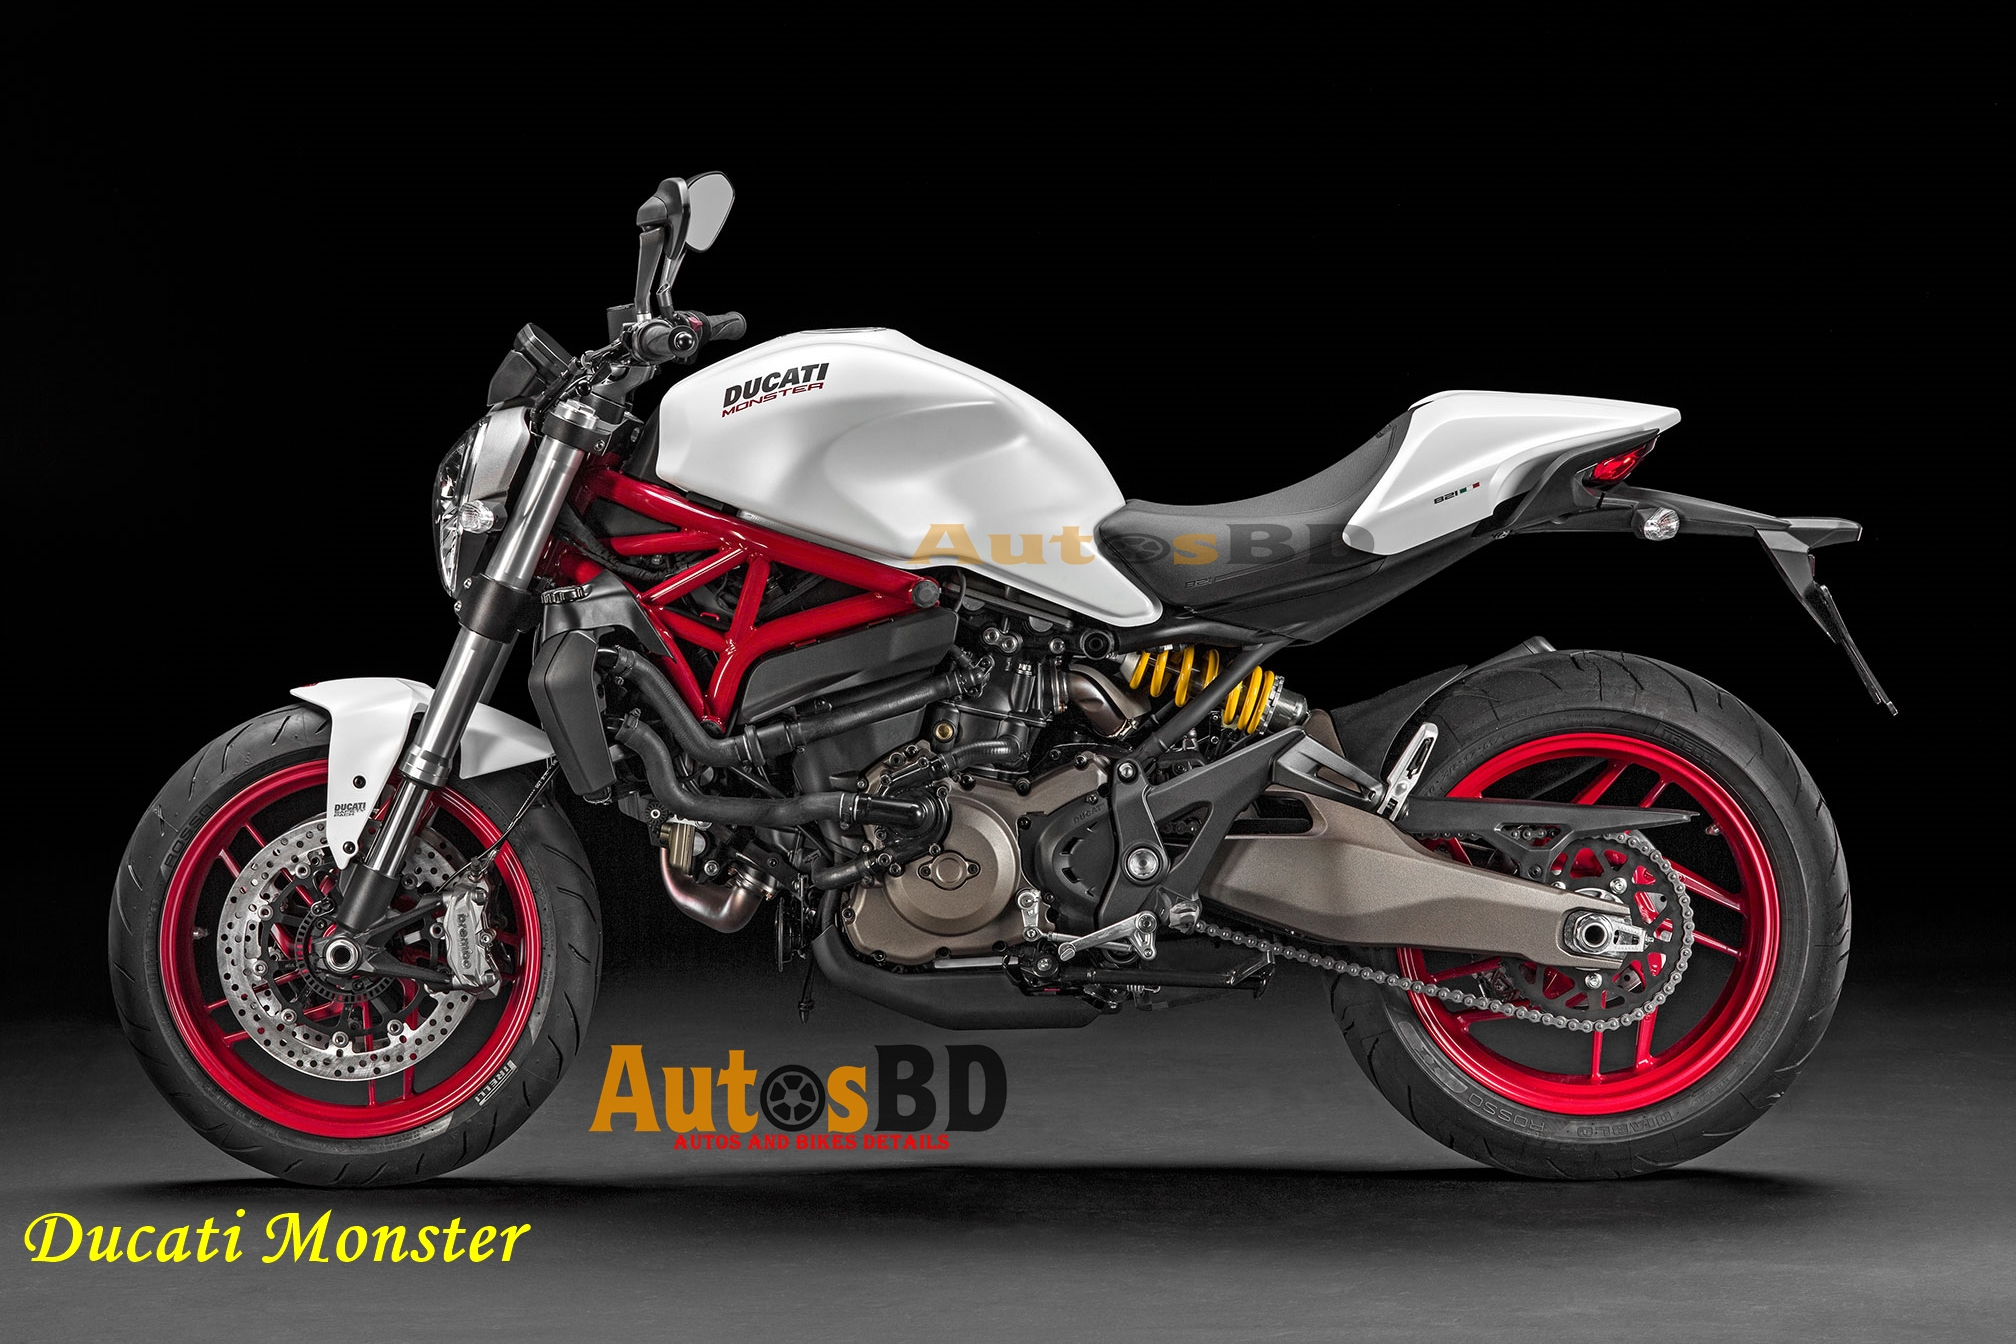 Ducati Monster Motorcycle Specification